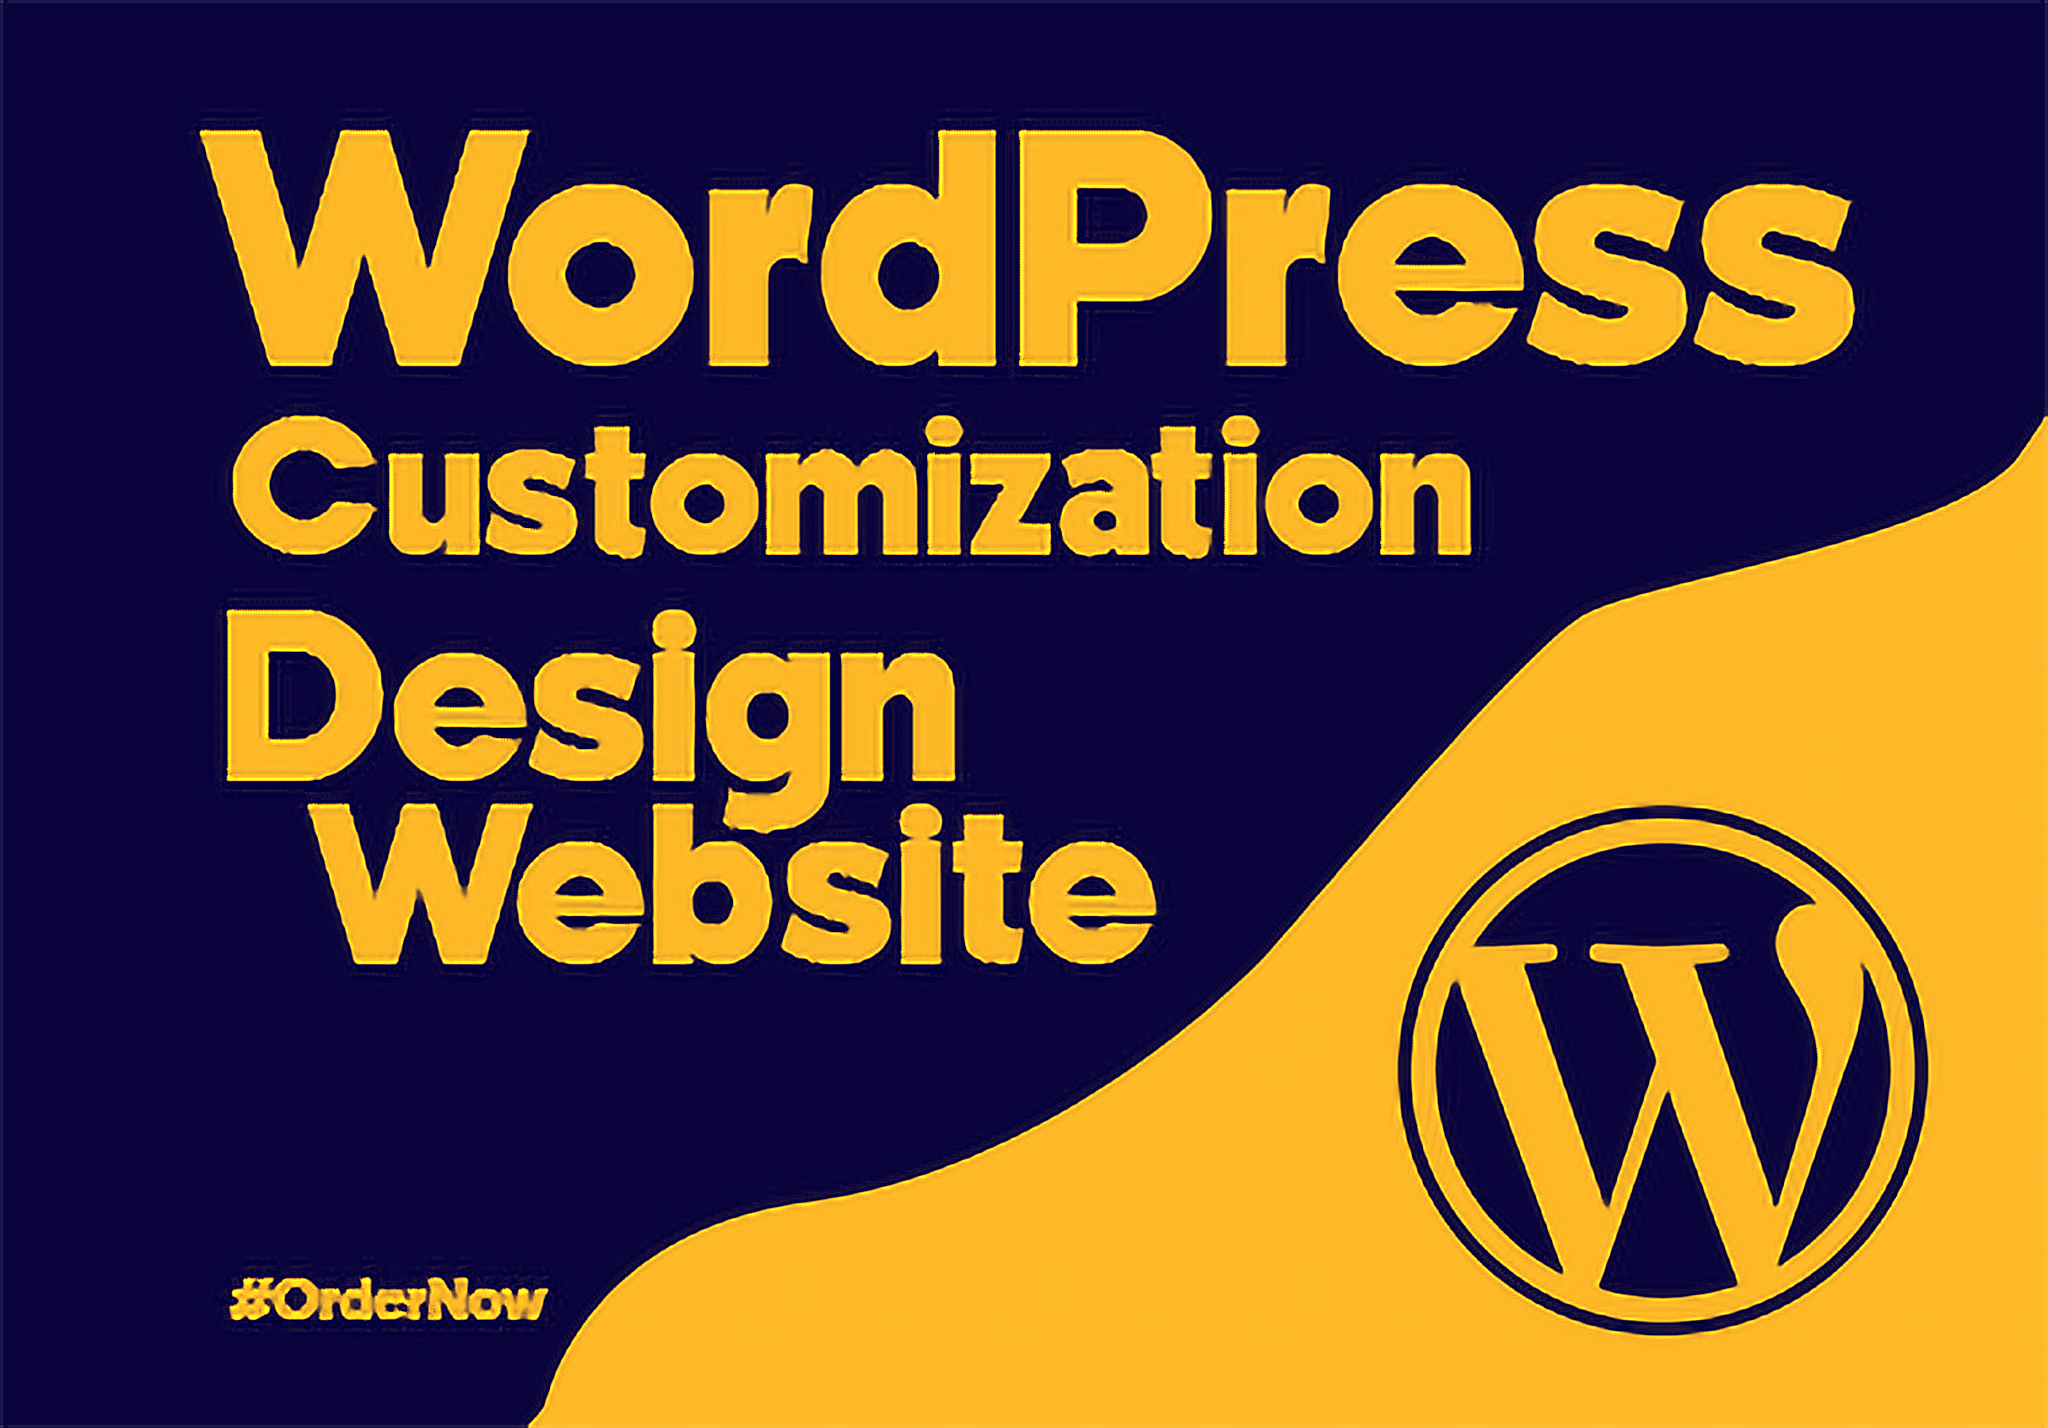 Responsive webpage design and customize for wordpress website